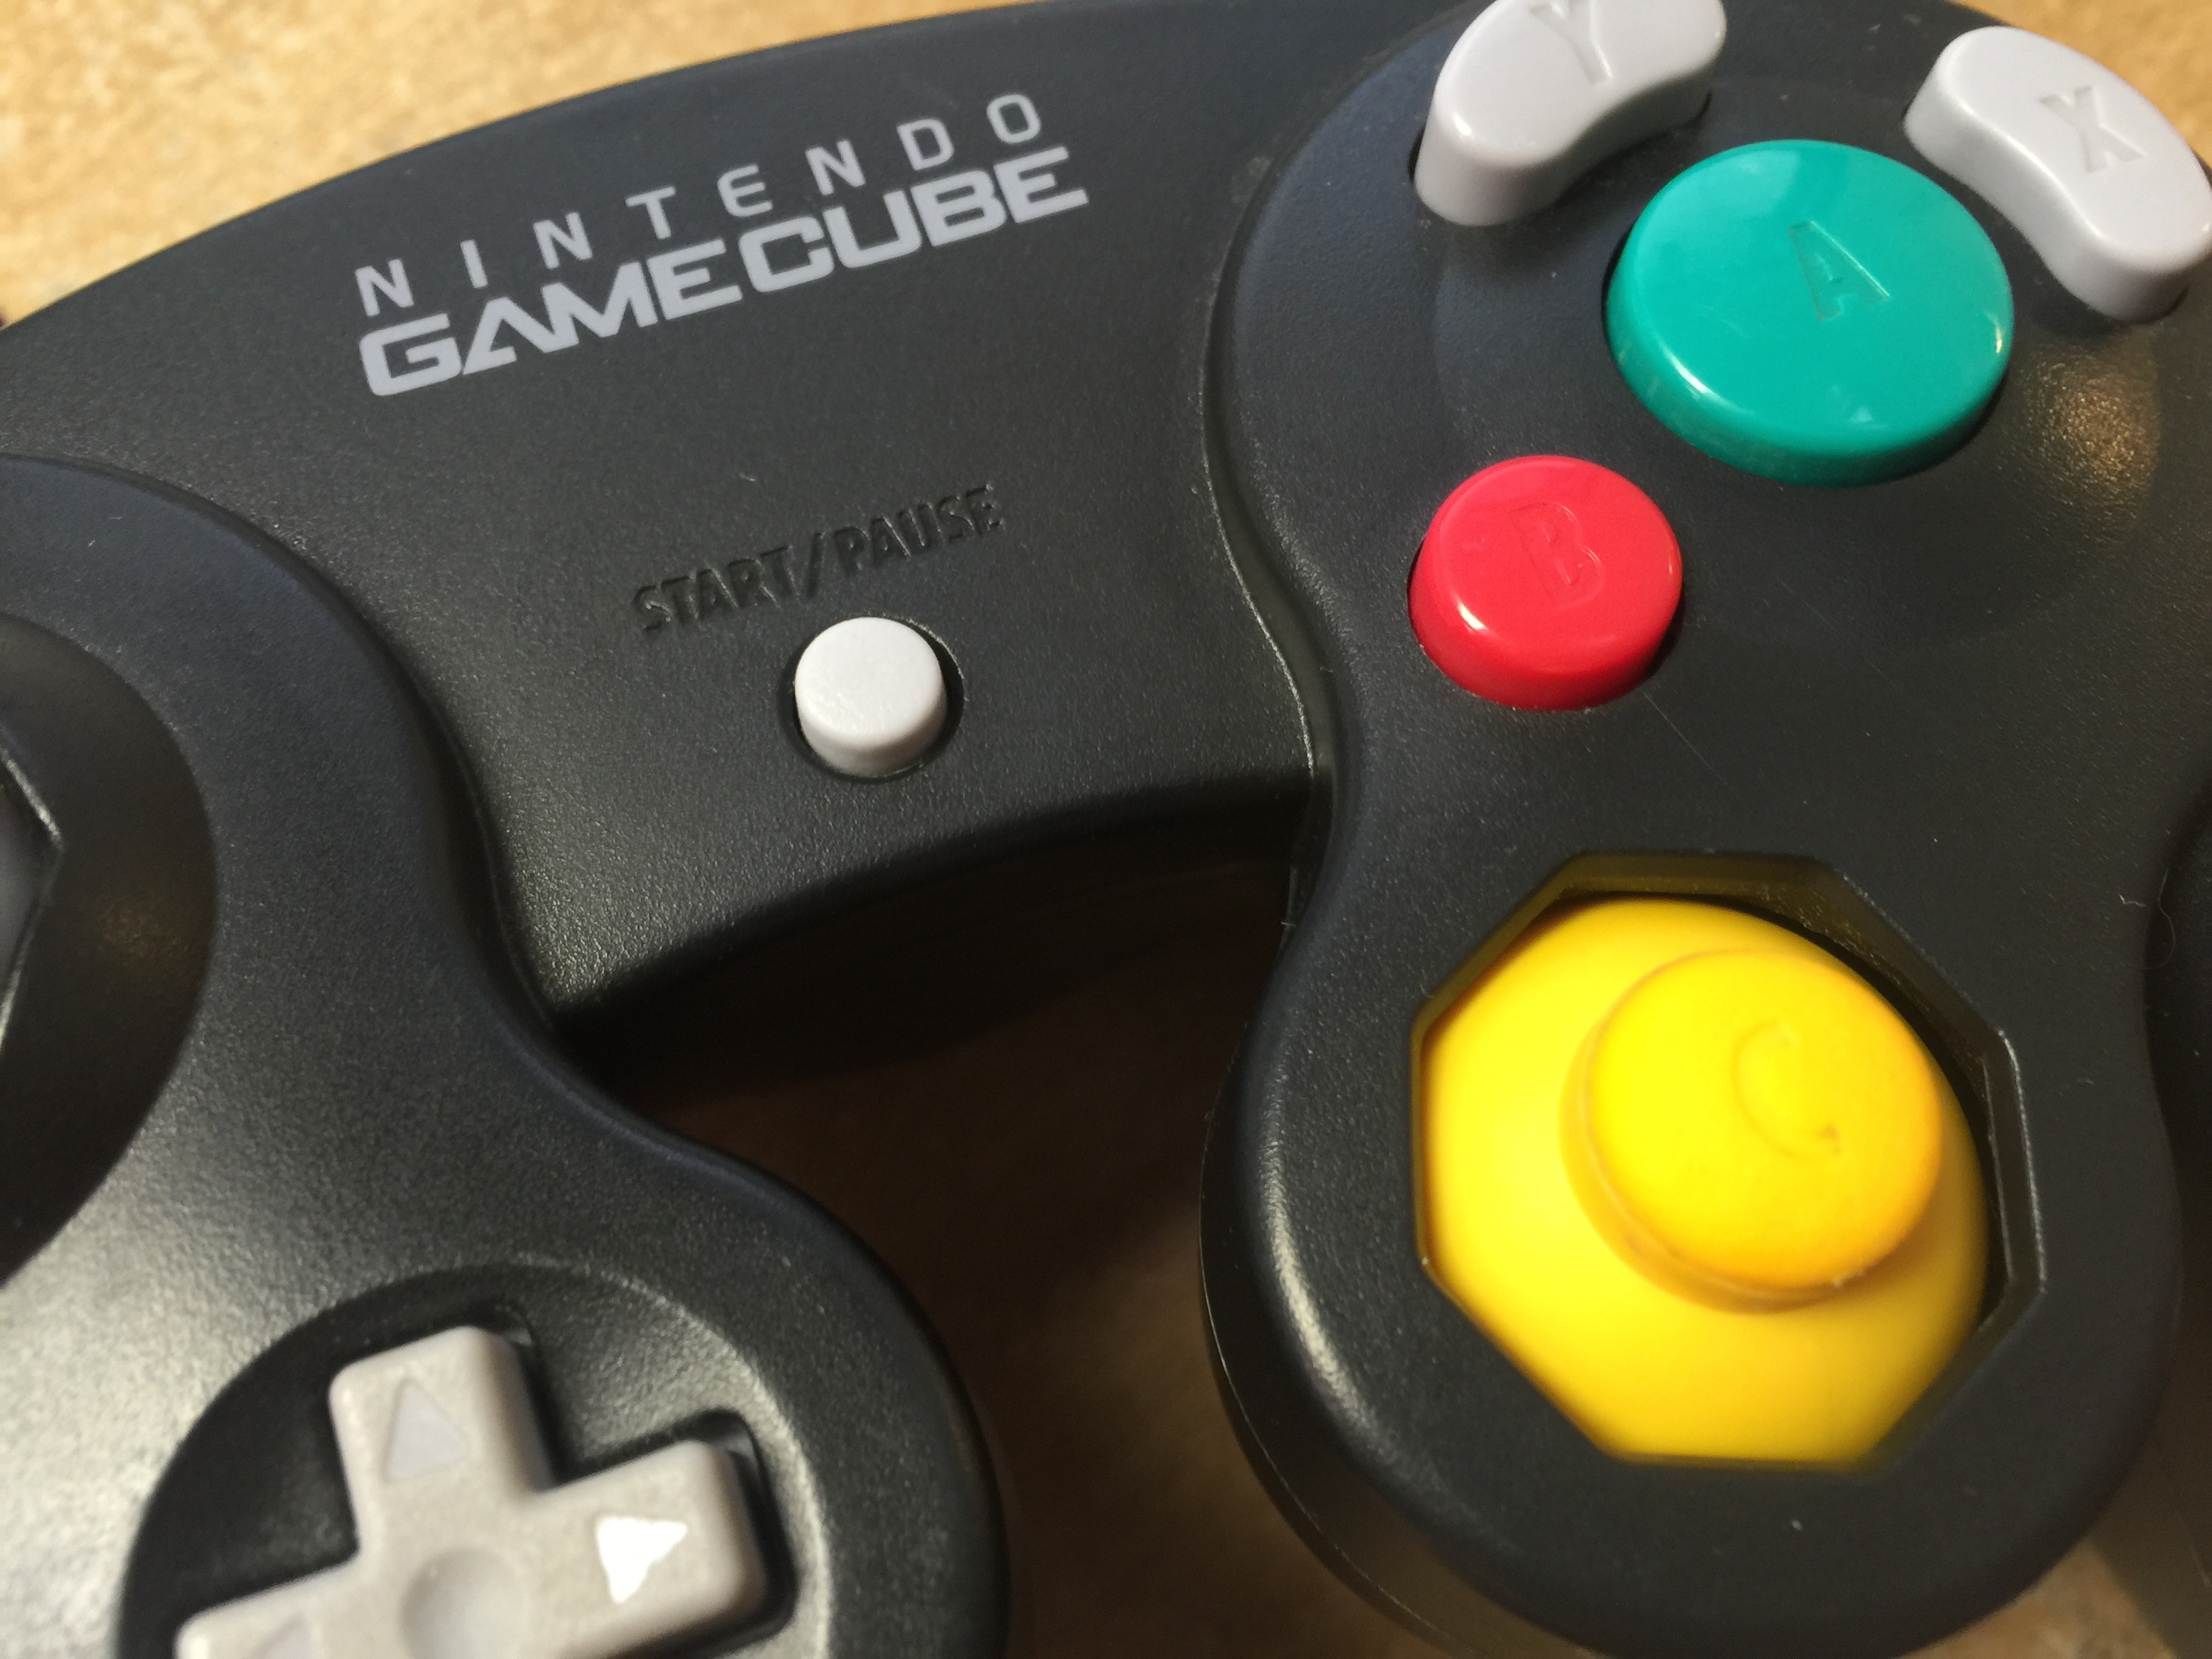 GameCube controller adapter for Mac and PC coming soon for $19.99